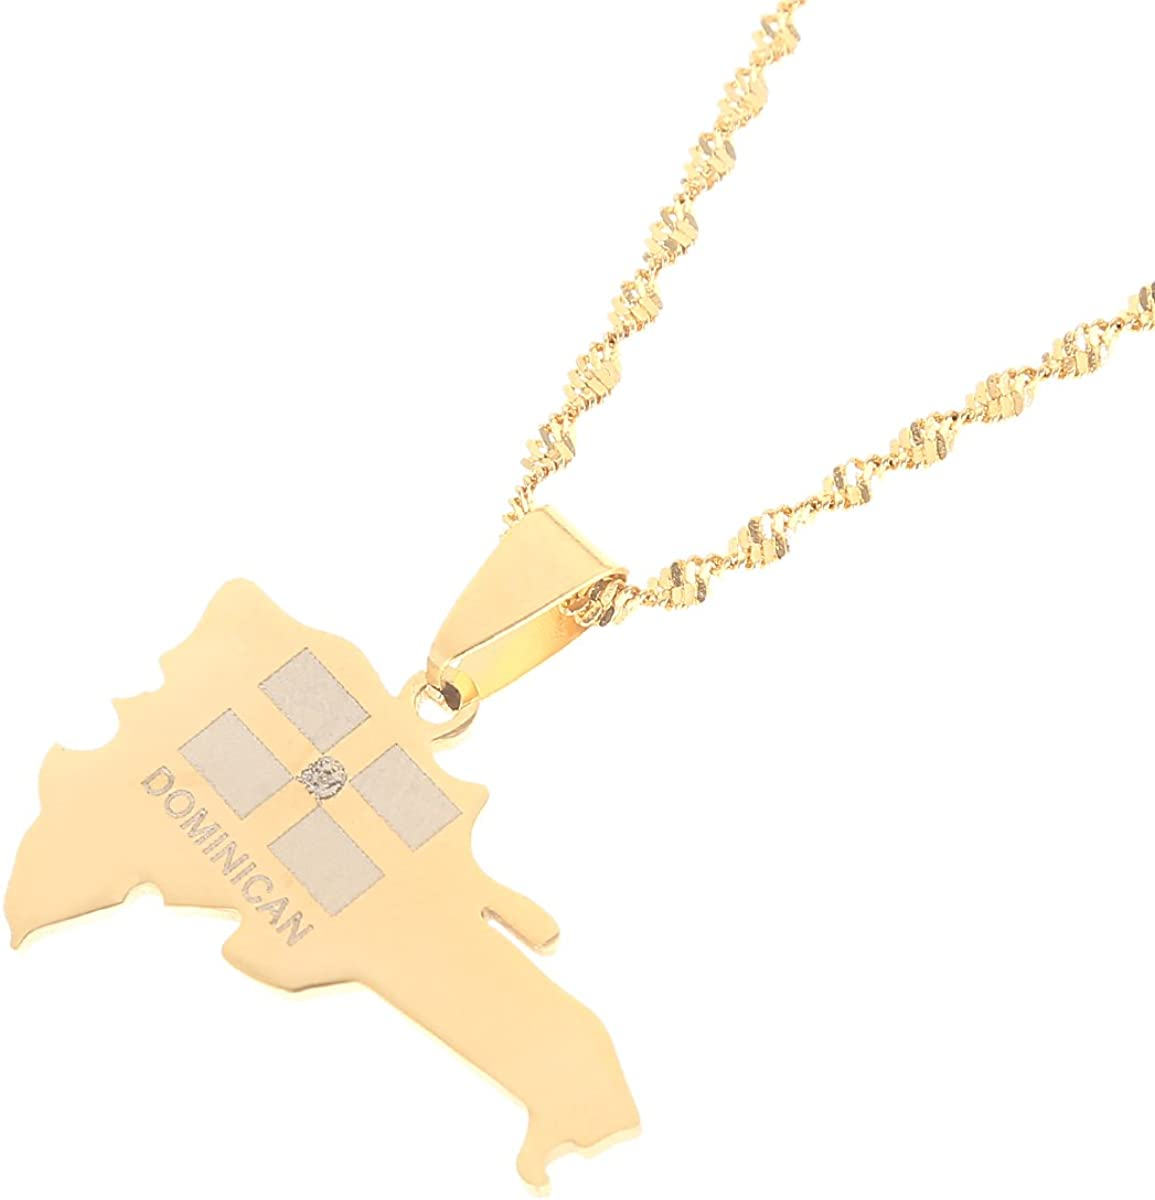 Stainless Steel The Dominican Republic Map Pendant Necklace for Women Gold Color Jewelry Map of Dominican